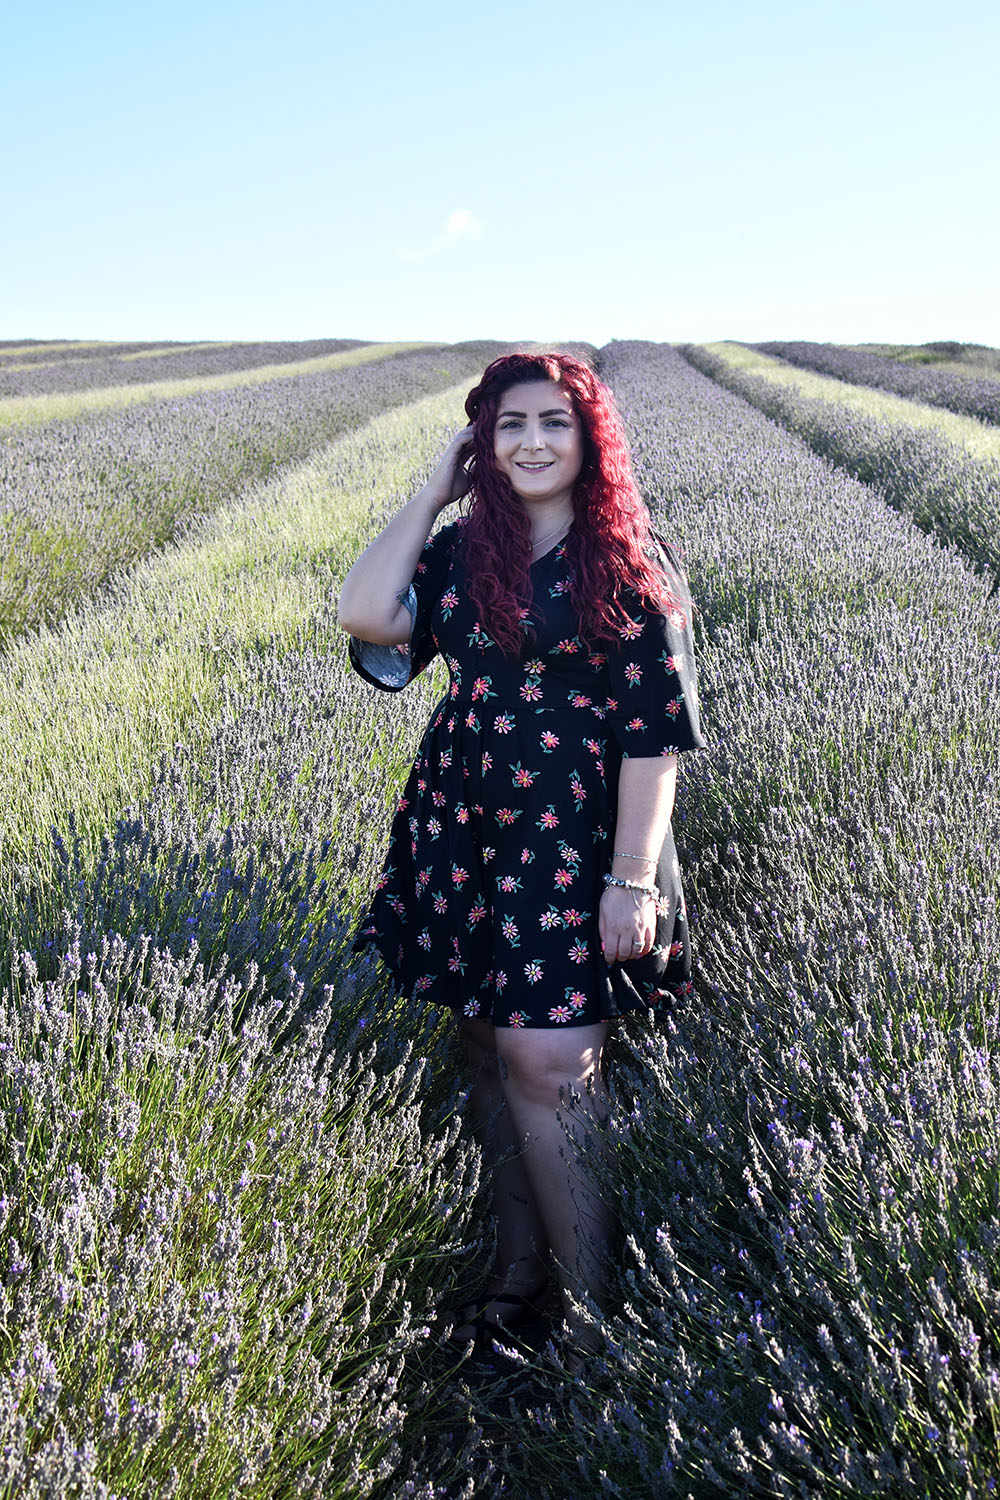 Adjusting to the 'new normal' | Living during the COVID-19 pandemic | Ioanna standing face on in a lavender field